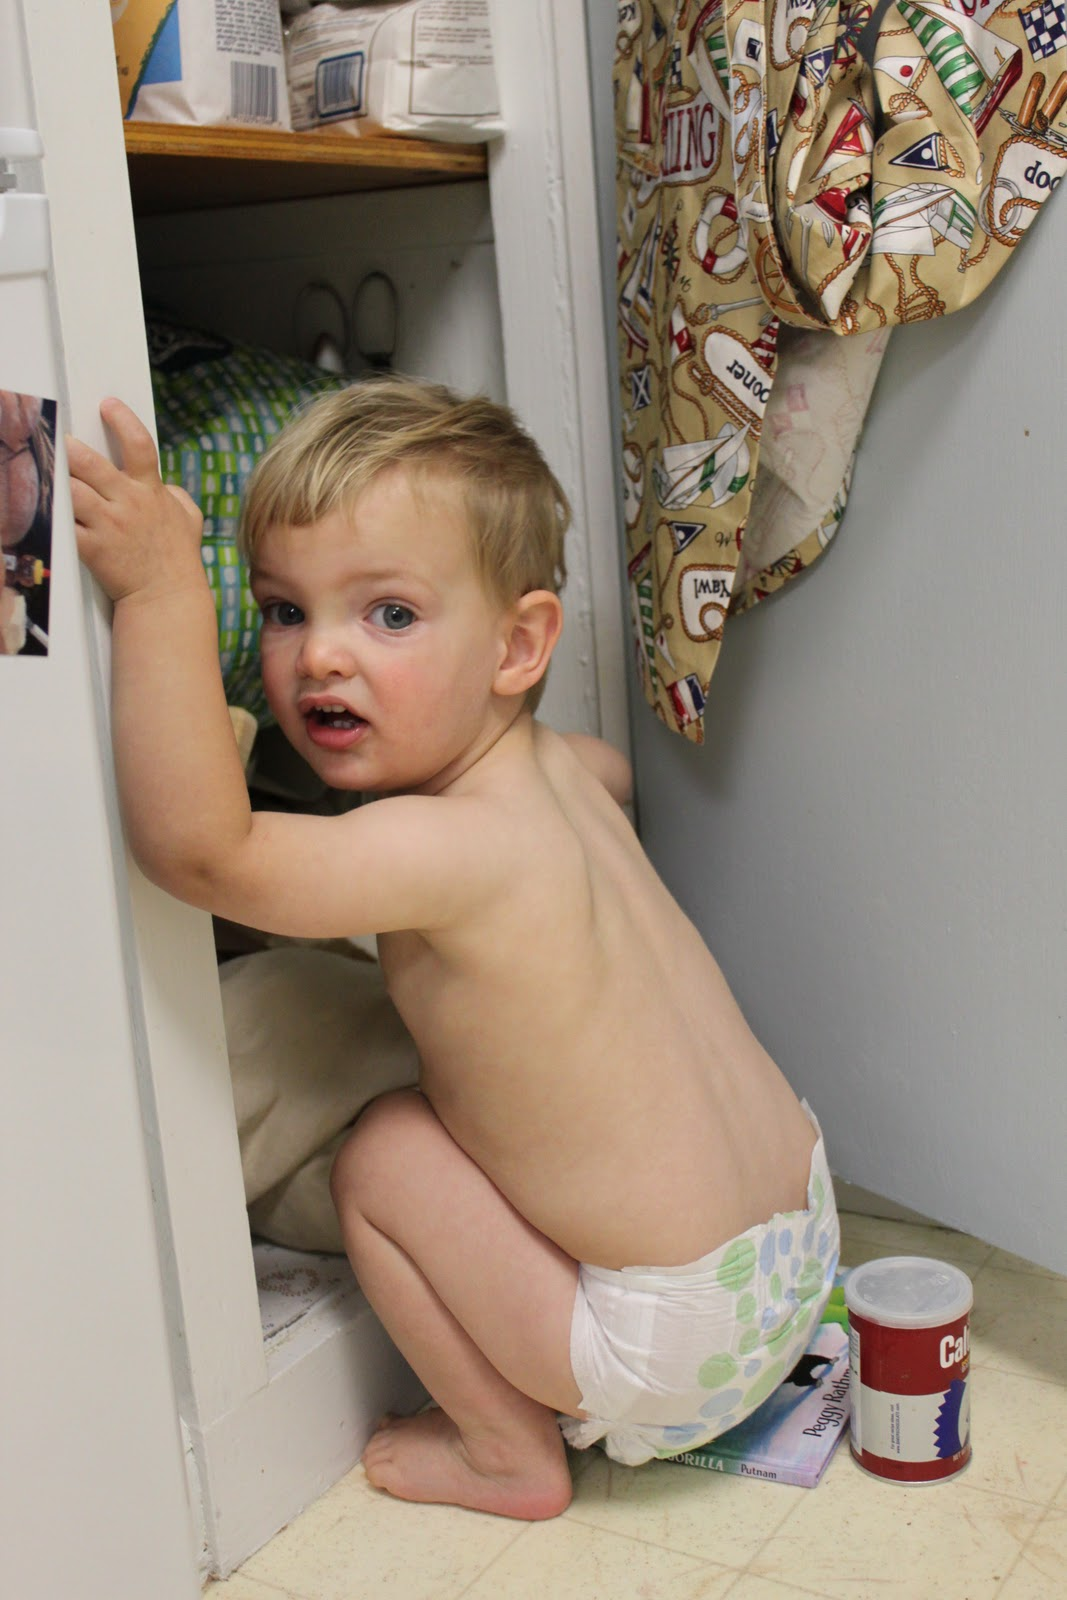 how I keep my child entertained. I let him dig in cupboards half naked ...